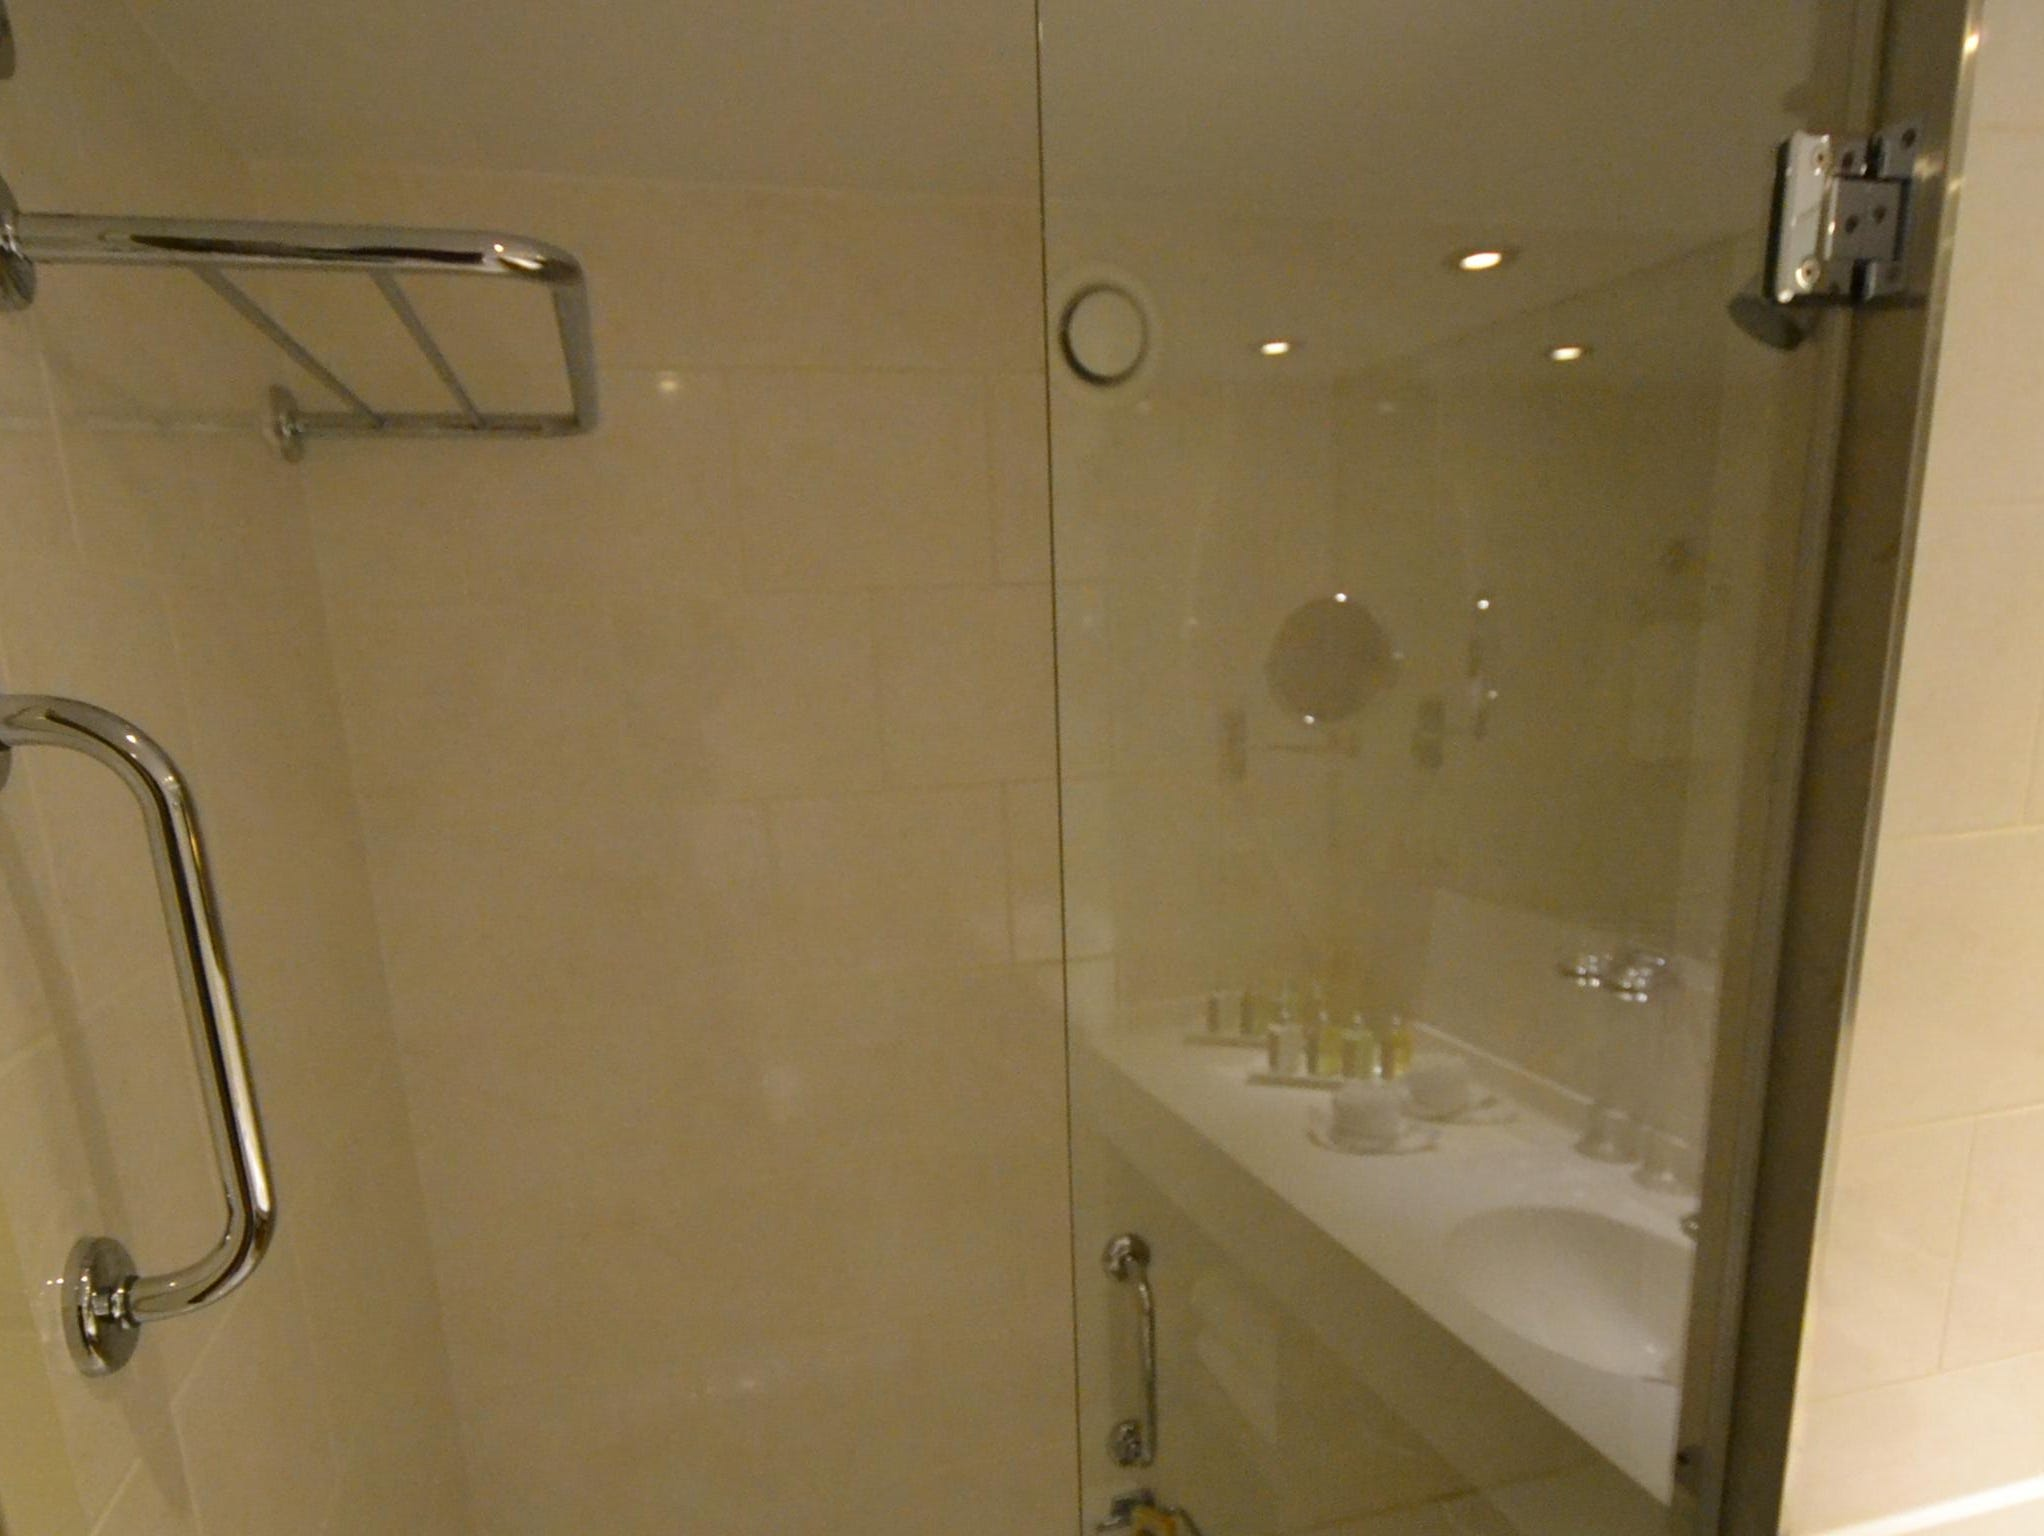 Deluxe Suite bathrooms have bath tubs that double as showers.